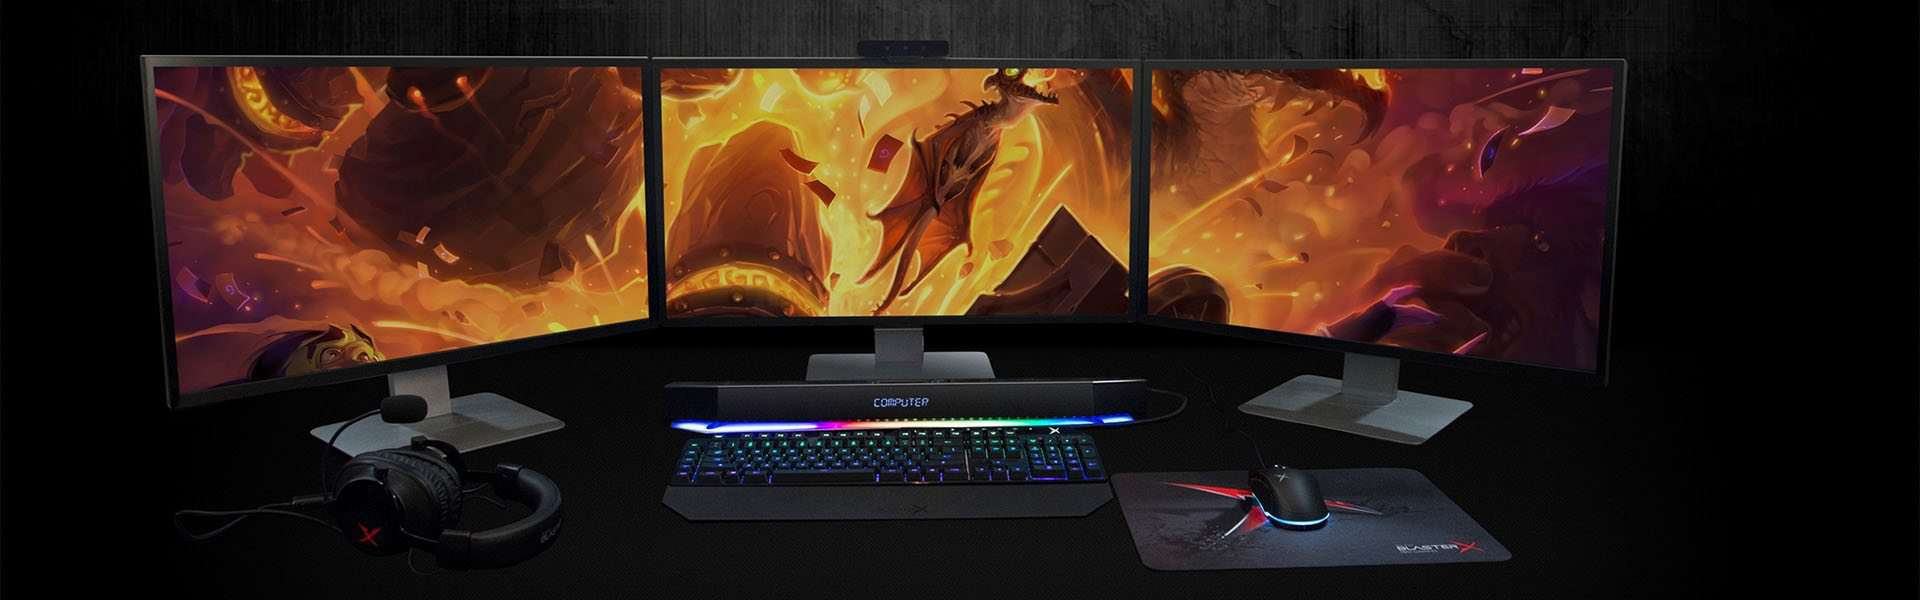 Best Gaming Monitor 2019 – Definitive Buying Guide For Gaming Monitors